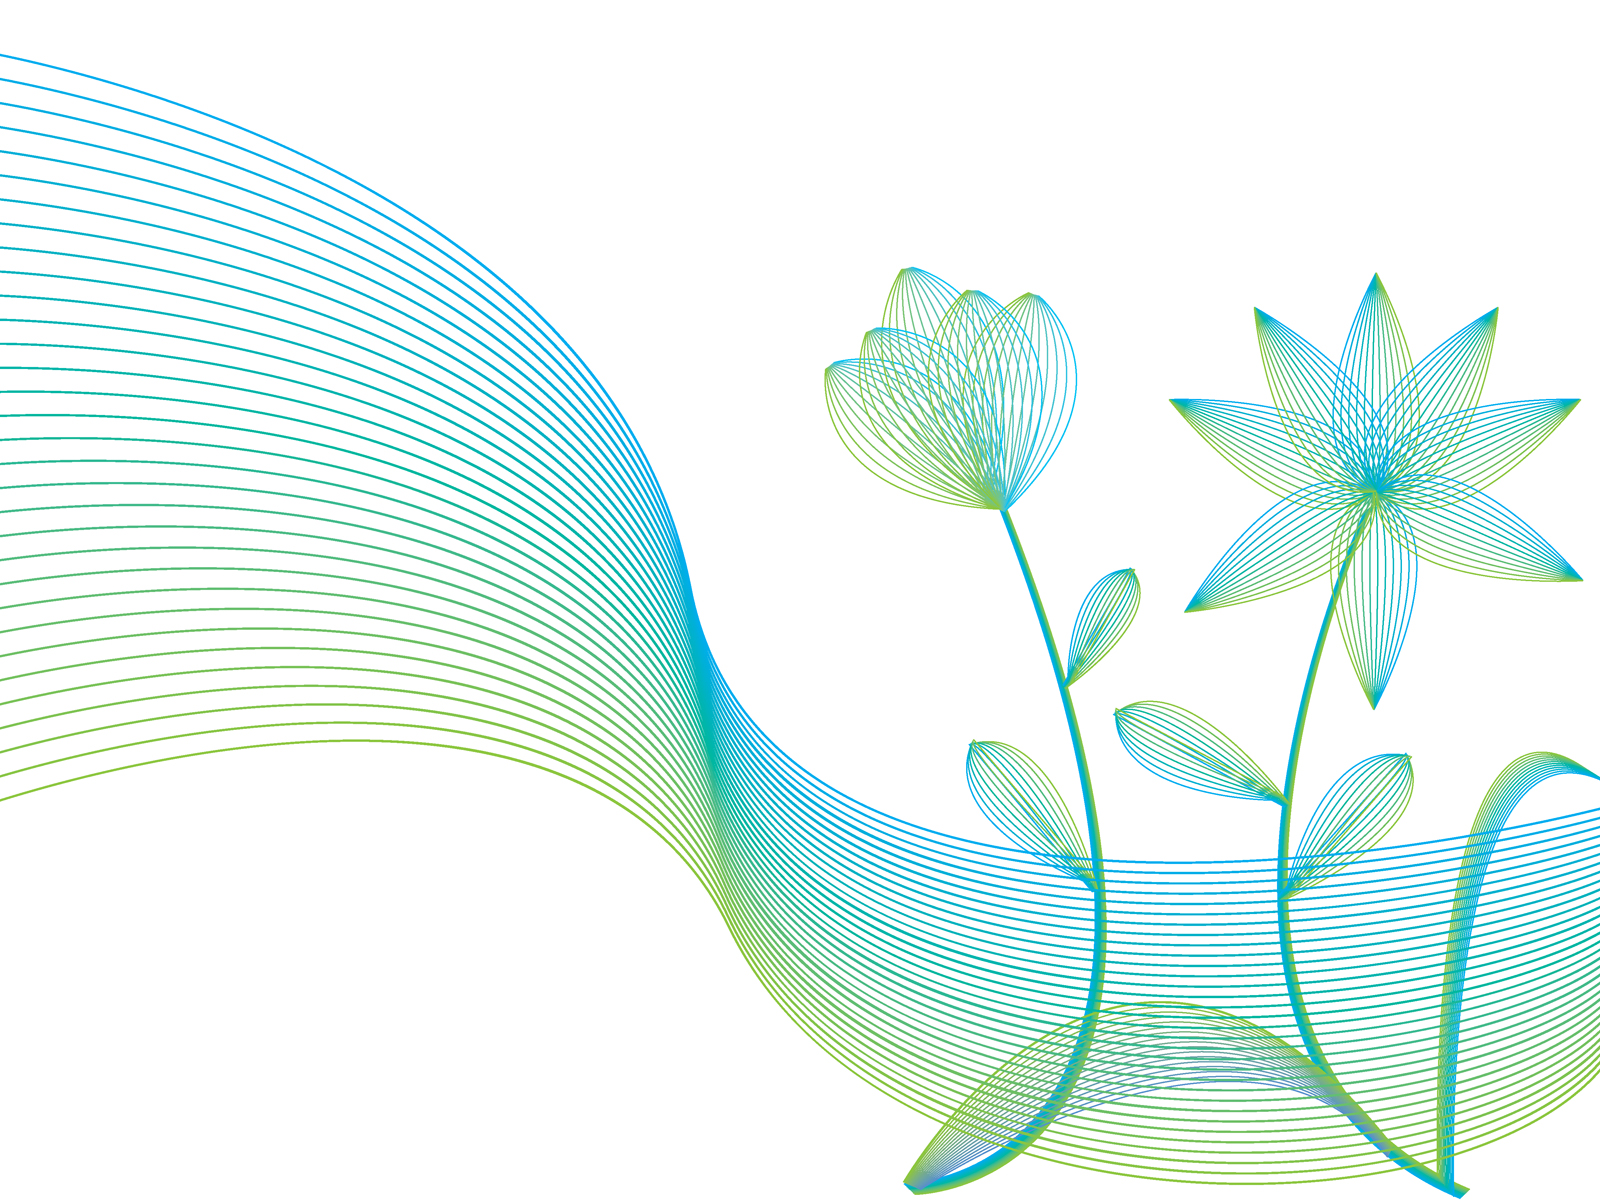 Line flowers with wind lines backgrounds abstract blue flowers line flowers with wind lines backgrounds izmirmasajfo